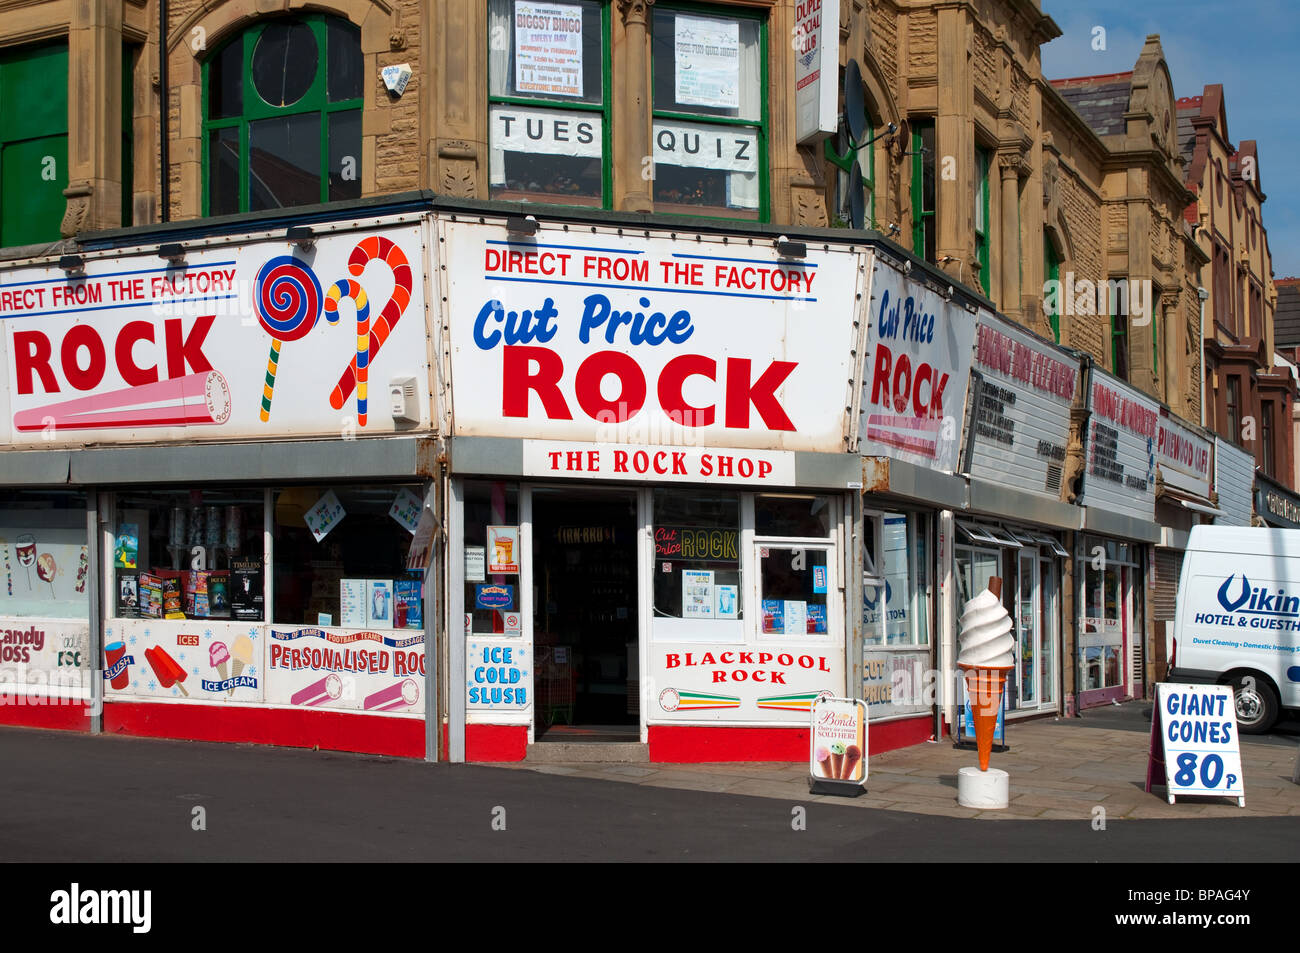 A Traditional Sweet Rock Shop Shop In Blackpool England